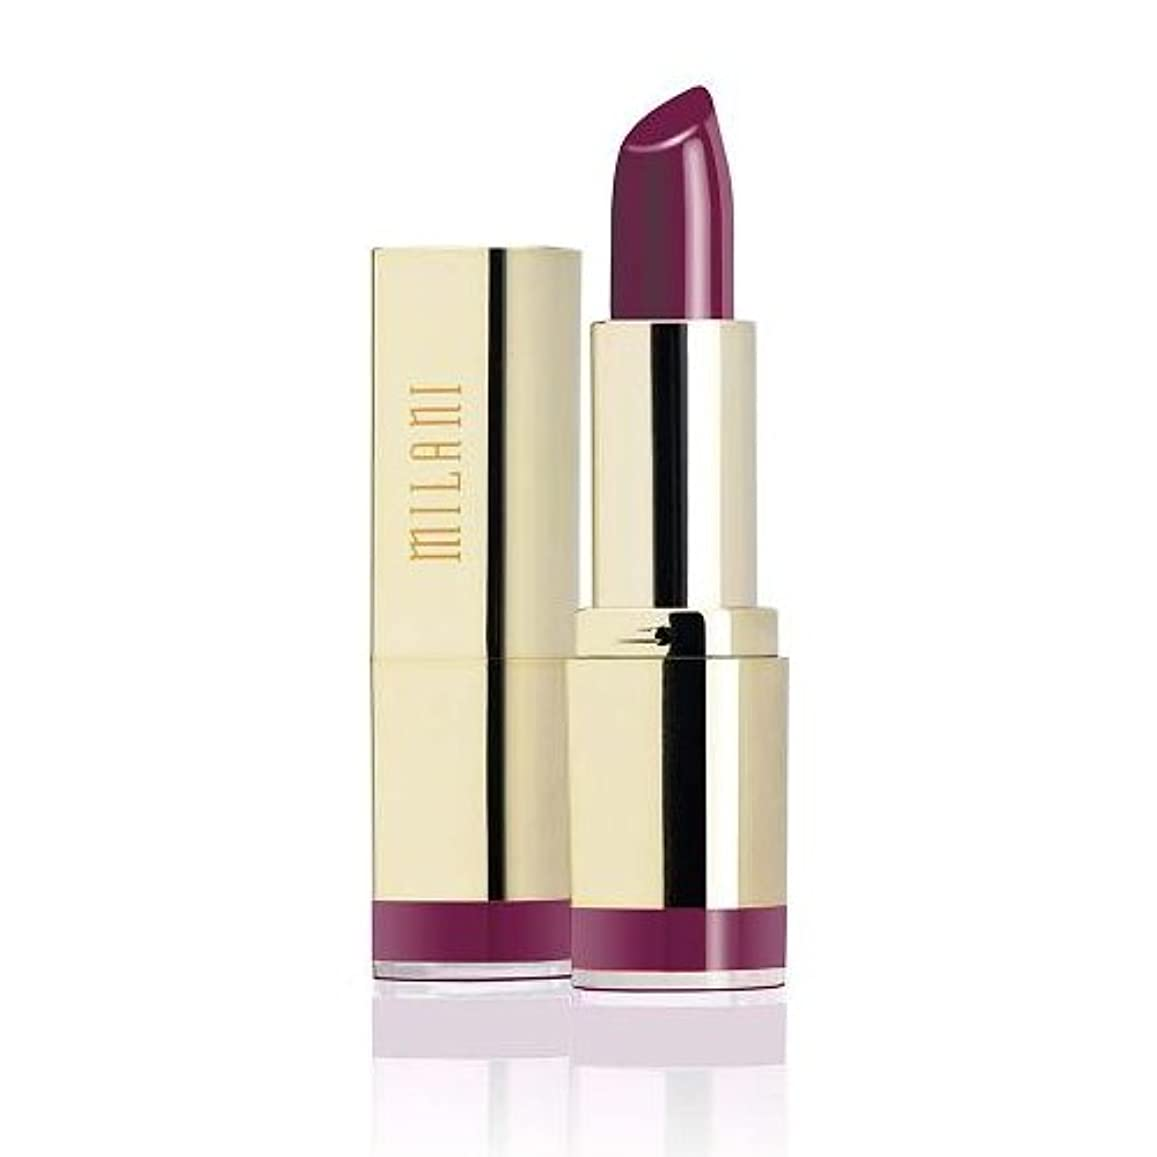 MILANI Color Statement Lipstick - Black Cherry (並行輸入品)